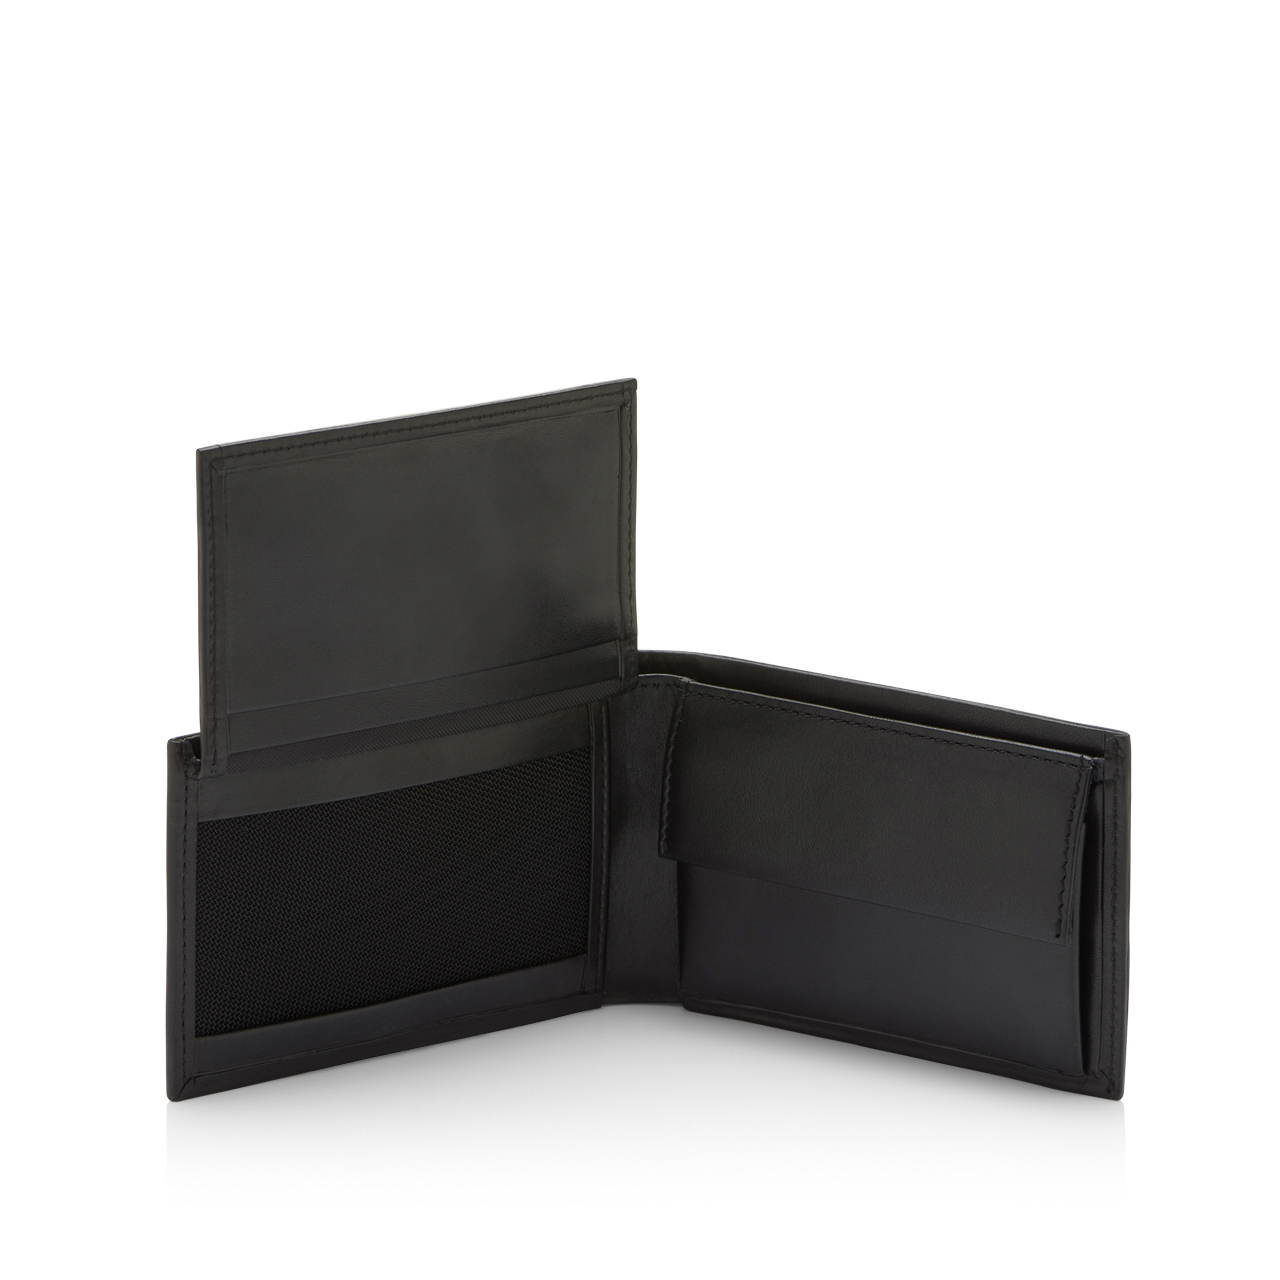 CL2 3.0 H4 Billfold